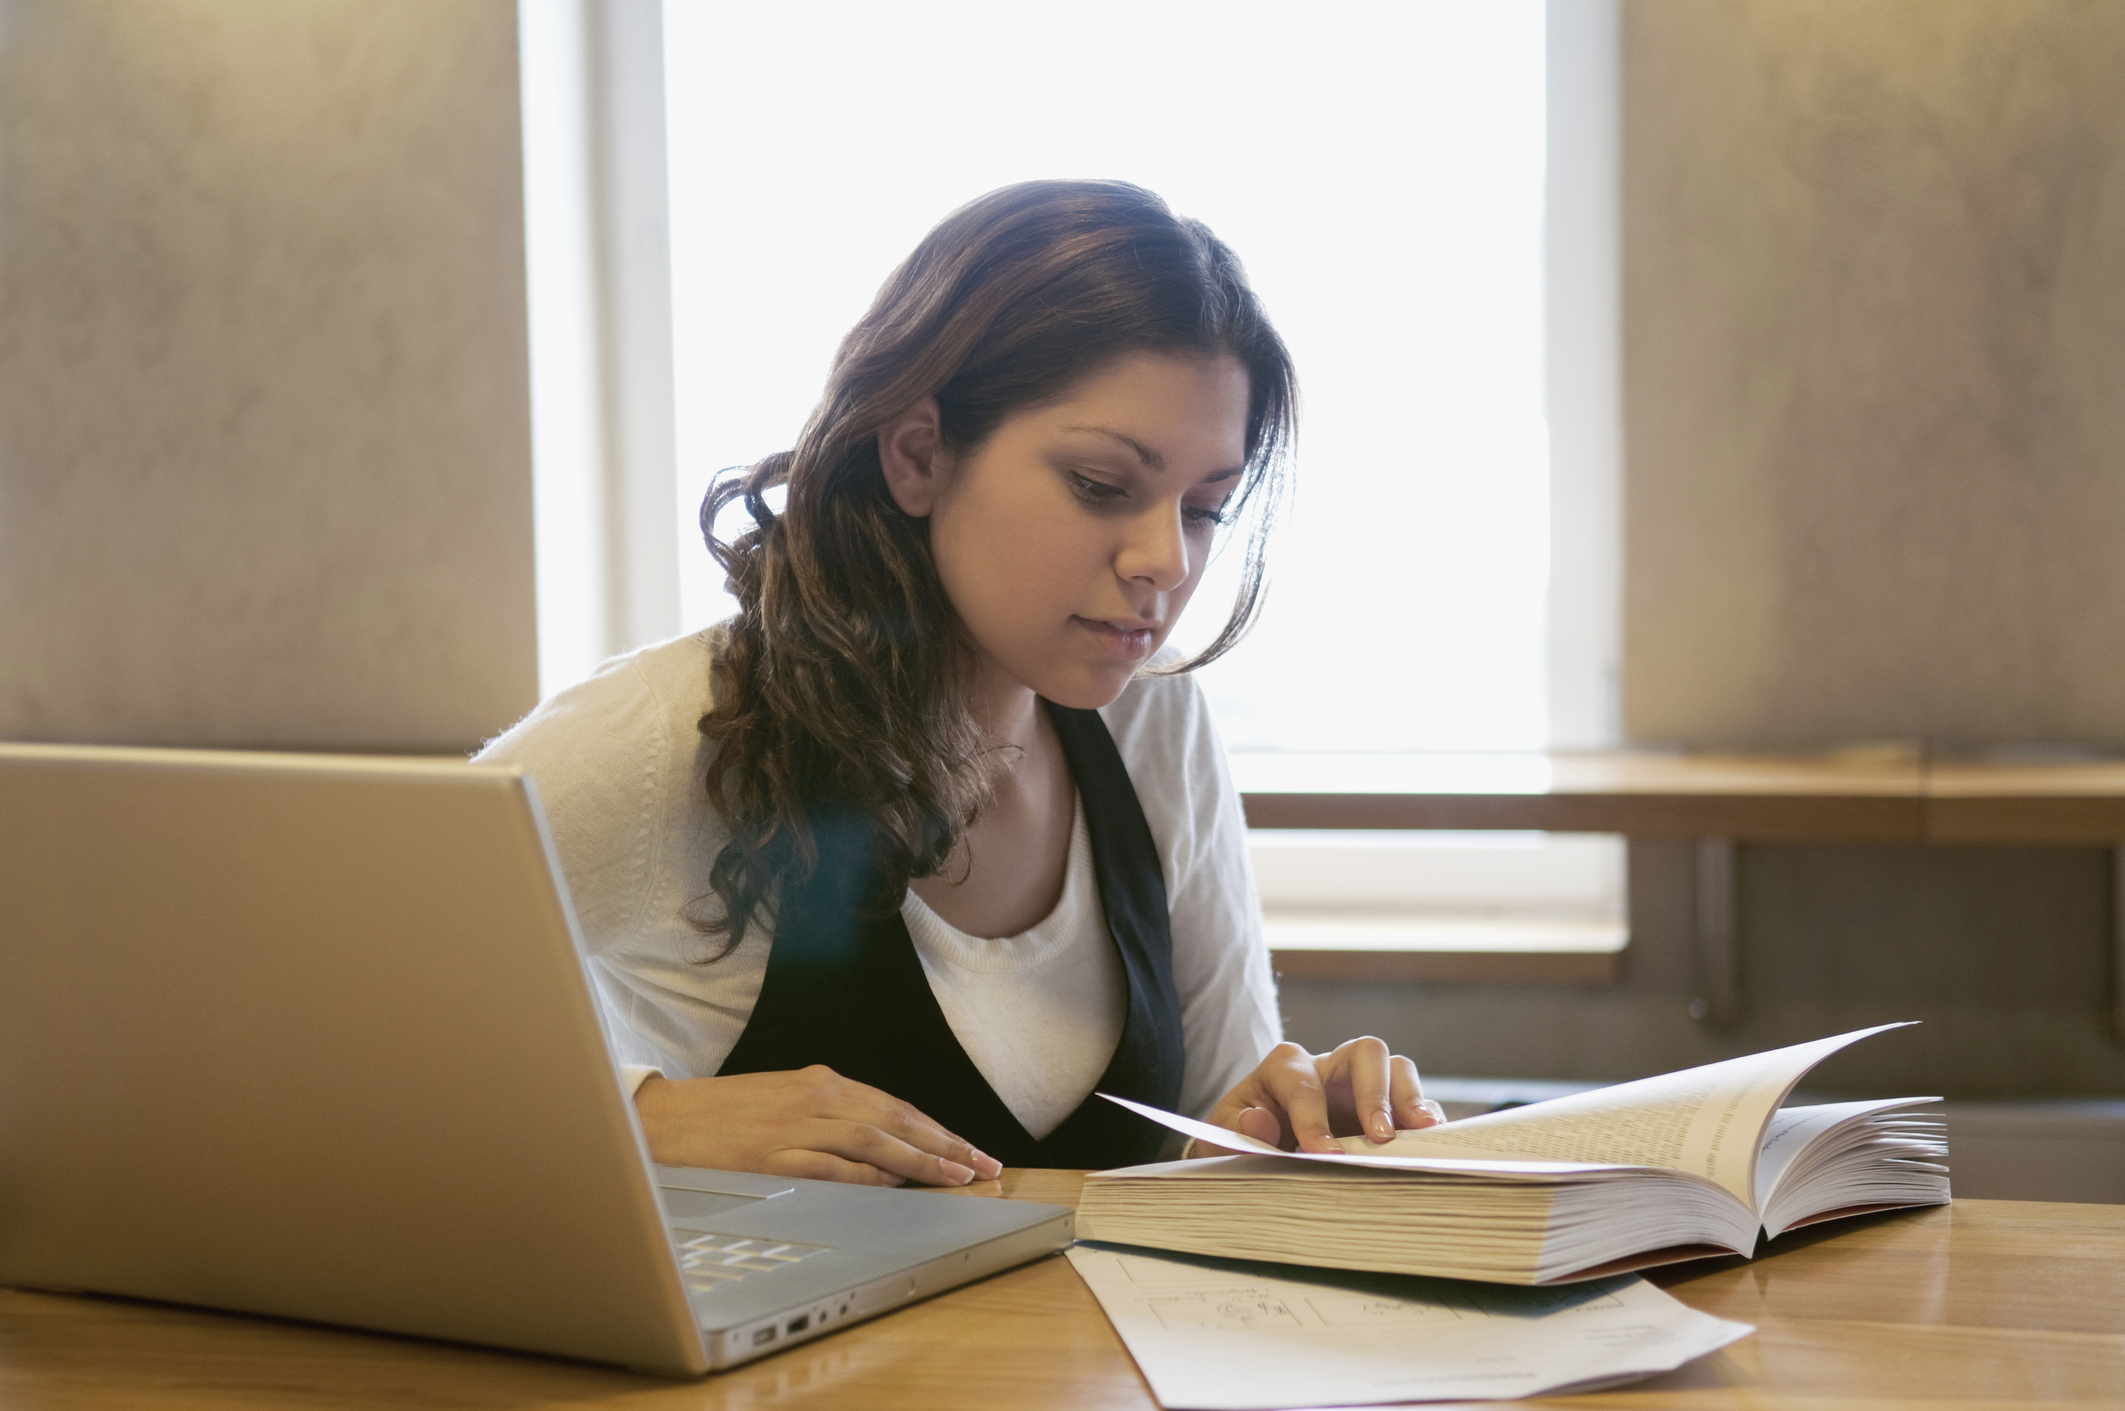 essay about taking online classes Continuing education accredited ceu certificate essay writing essays help how write academic school college admissions 101 online distance learning expert instruction.